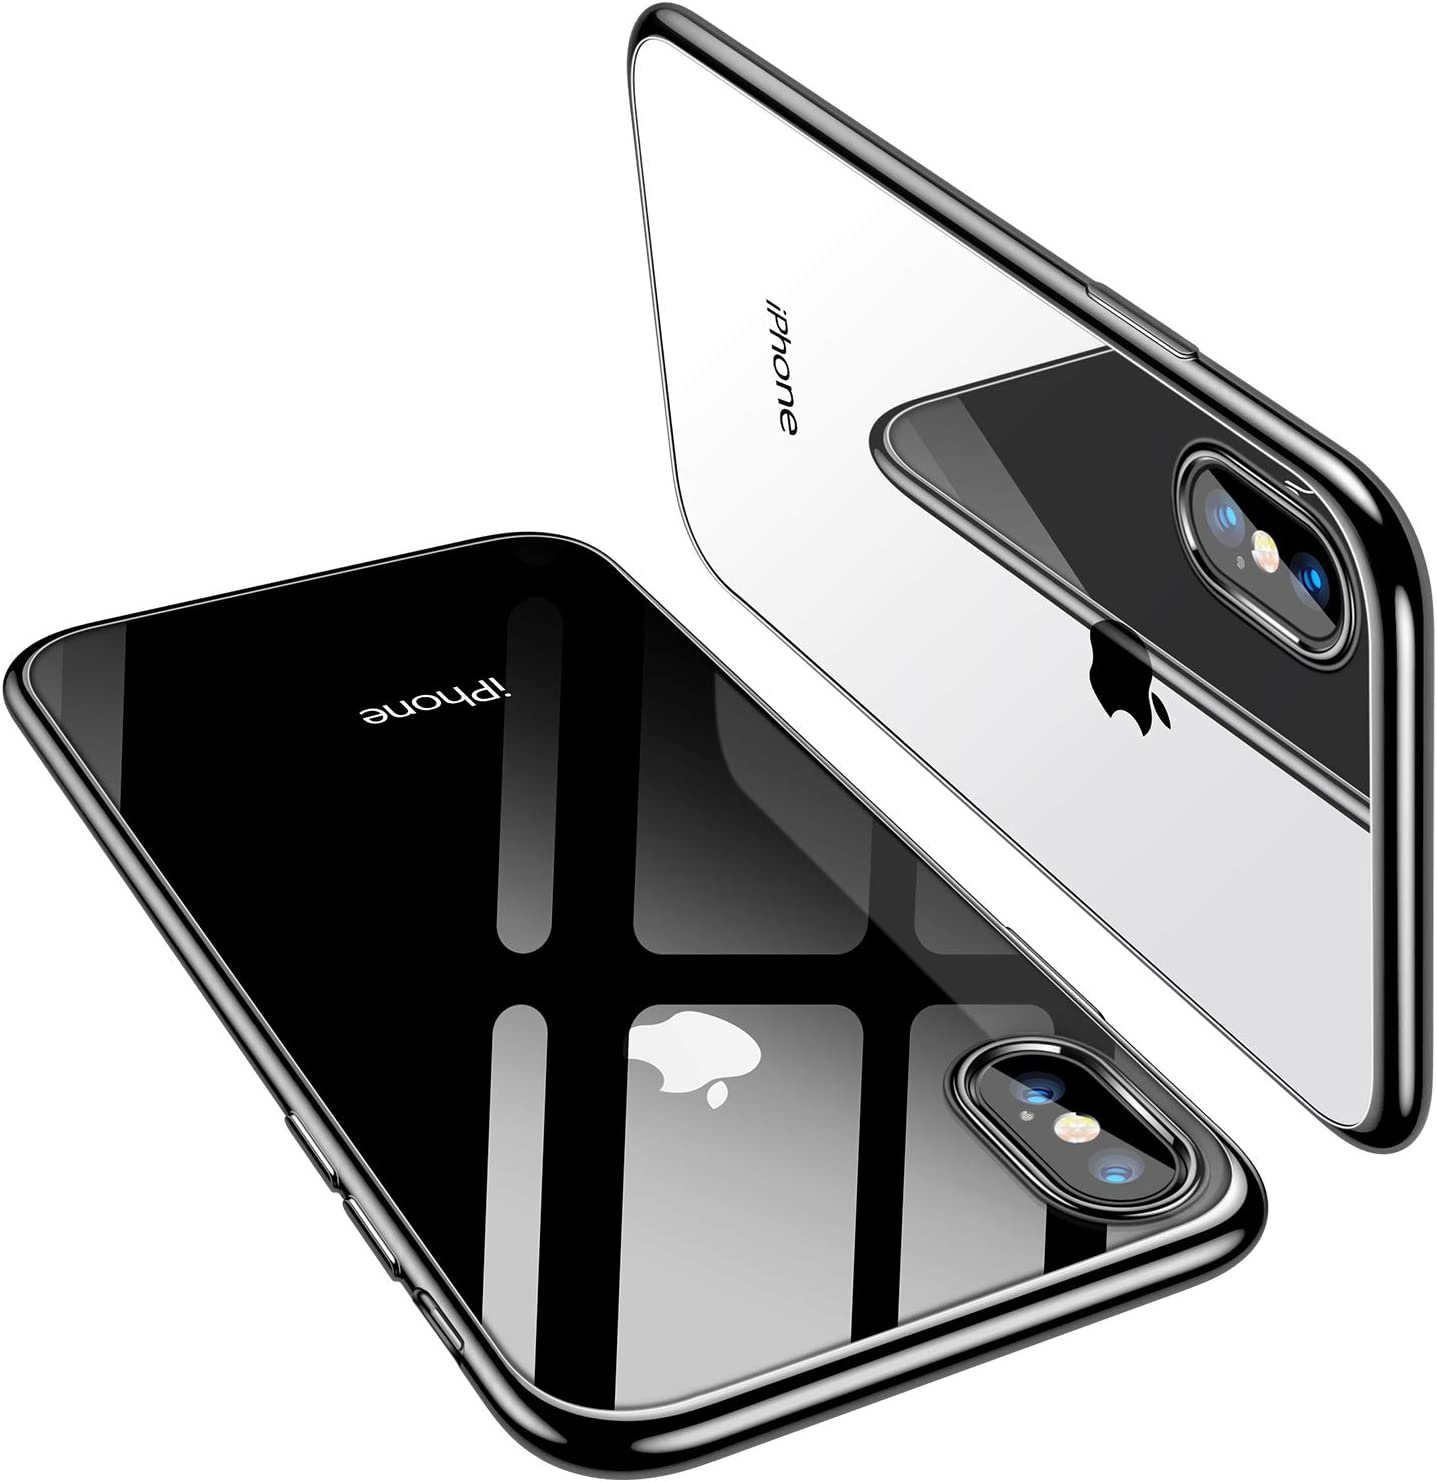 TORRAS iPhone X Case 2017 (ONLY), Ultra Thin Slim Fit Soft Silicone TPU Cover Case Compatible with iPhone X 2017, Black